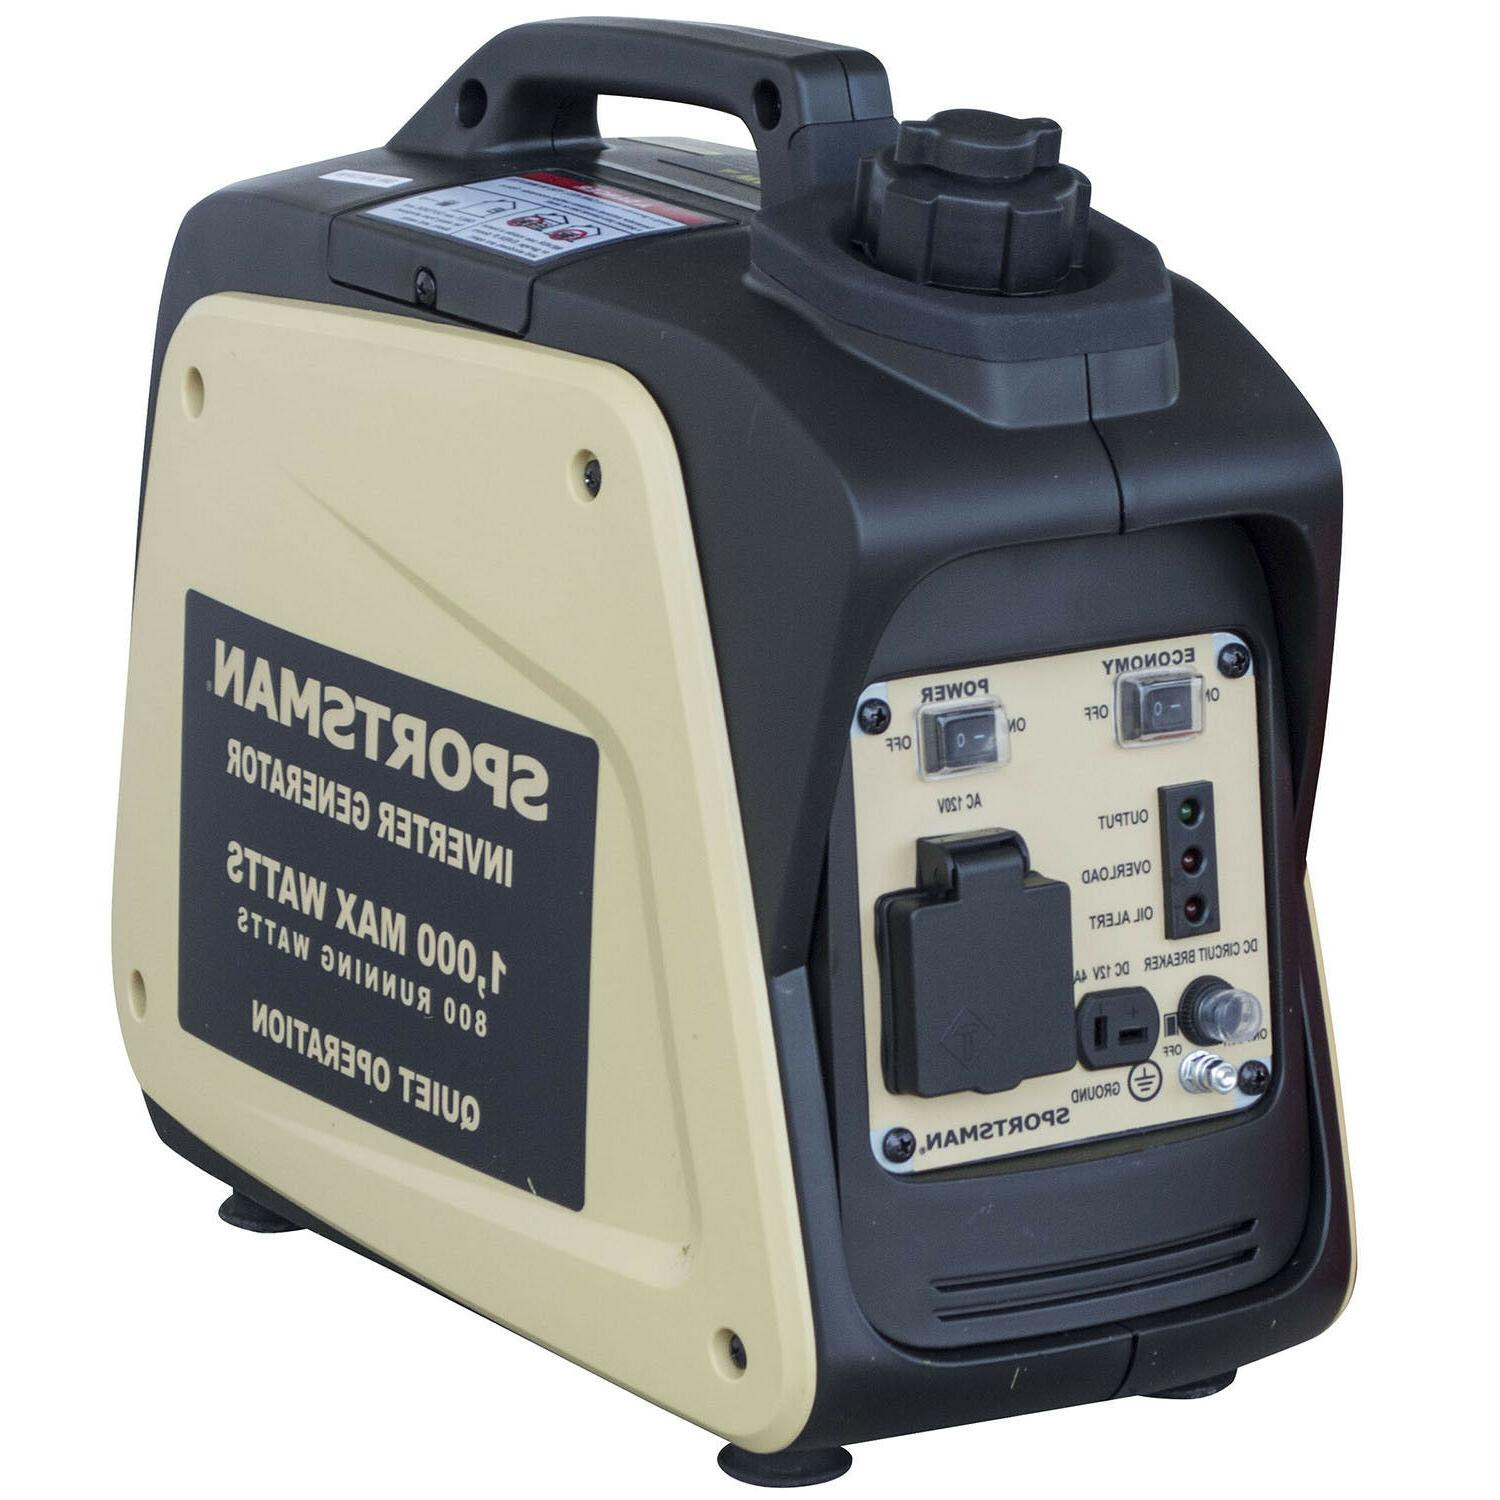 Sportsman 1000 Generator Portable Gas Quiet Power Charger